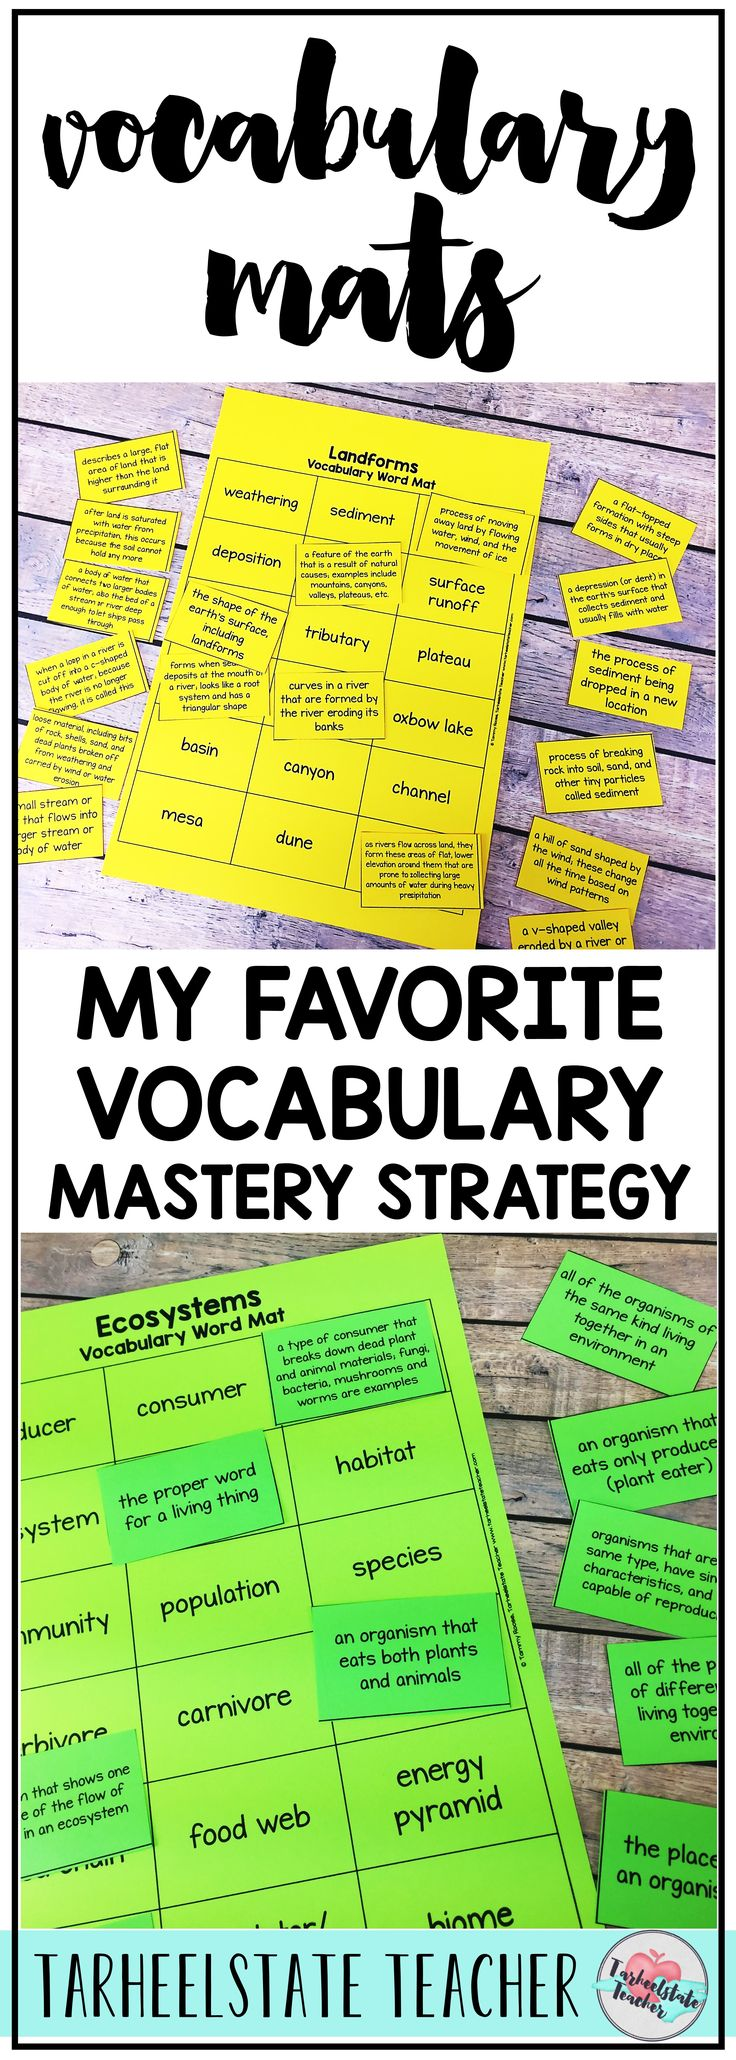 Vocabulary mastery in the content areas is very important to students' success with the domain. Check out my favorite vocabulary strategy for an activity that you can build into your science units for pre-assessment and vocabulary mastery. Your 3rd, 4th, 5th, or 6th graders will love using the vocabulary mats/vocabulary cards to learn their science terms!